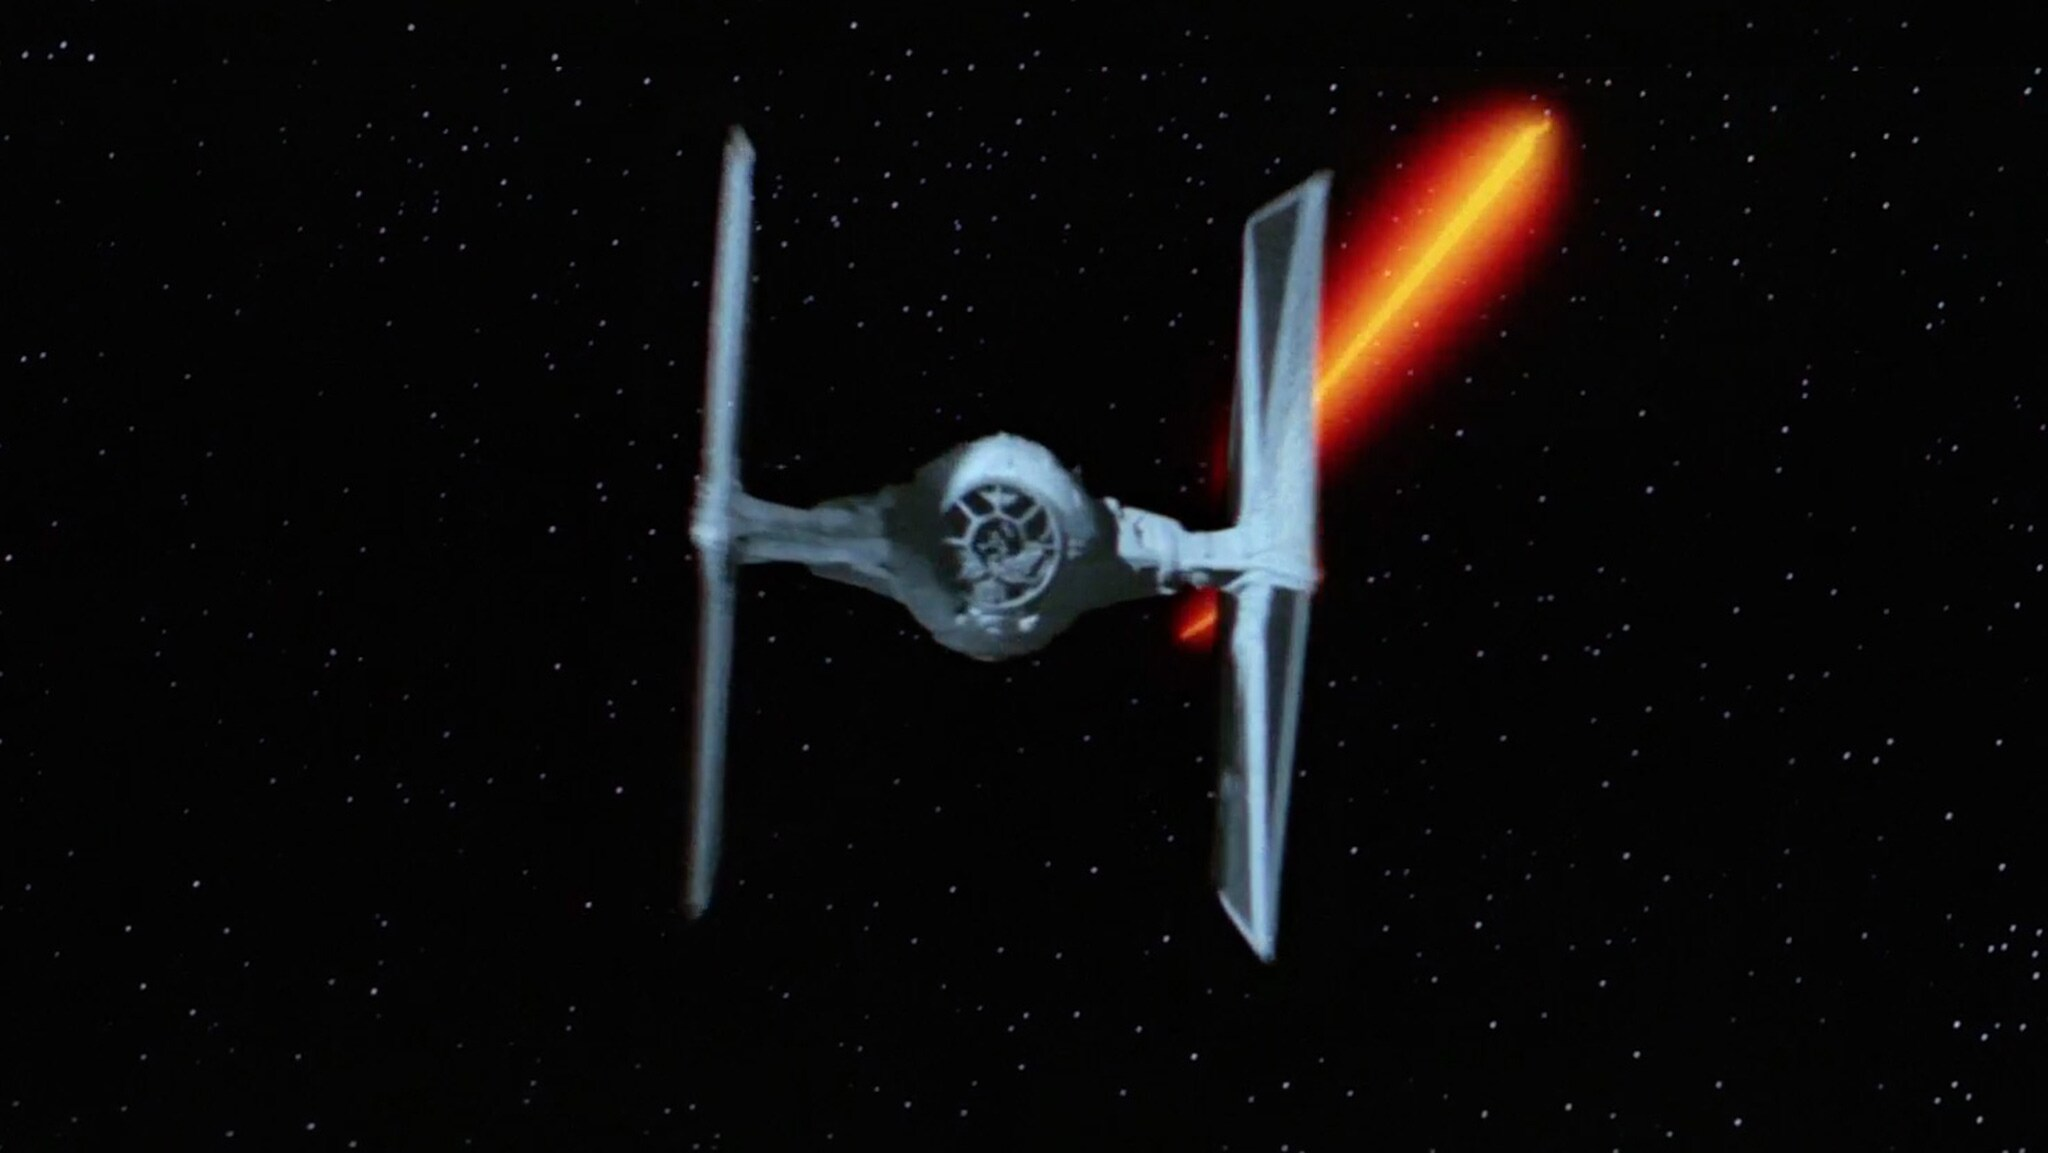 The Imperial TIE fighter from Star Wars: A New Hope.